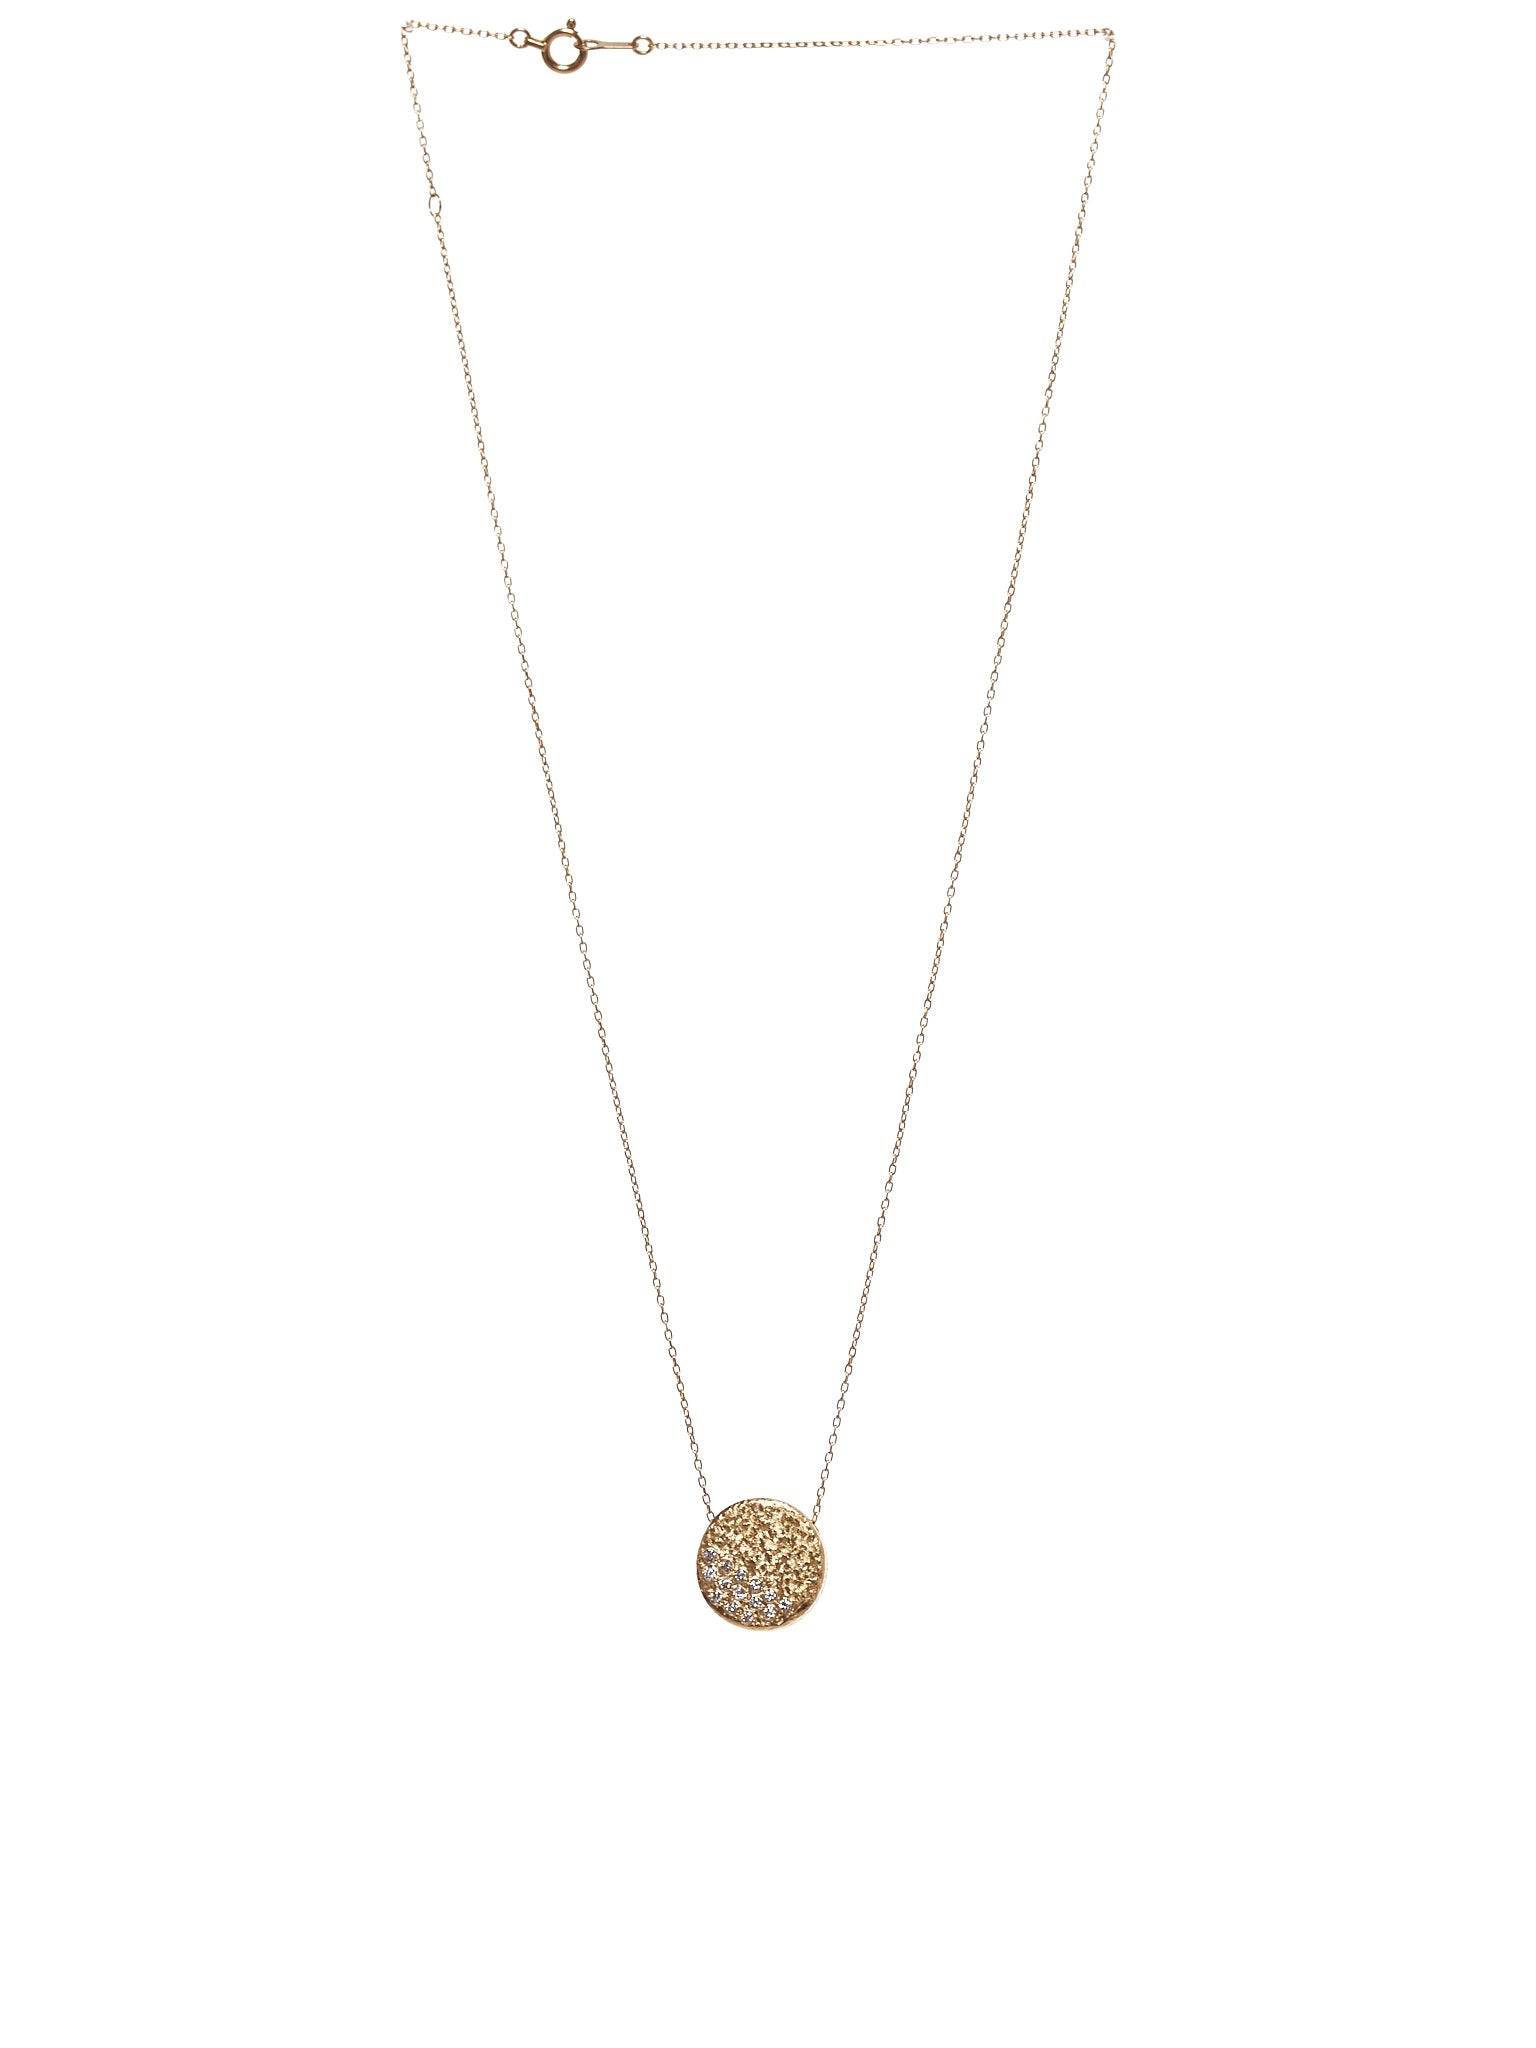 Stones Stone Zoo Necklace - Hlorenzo Back